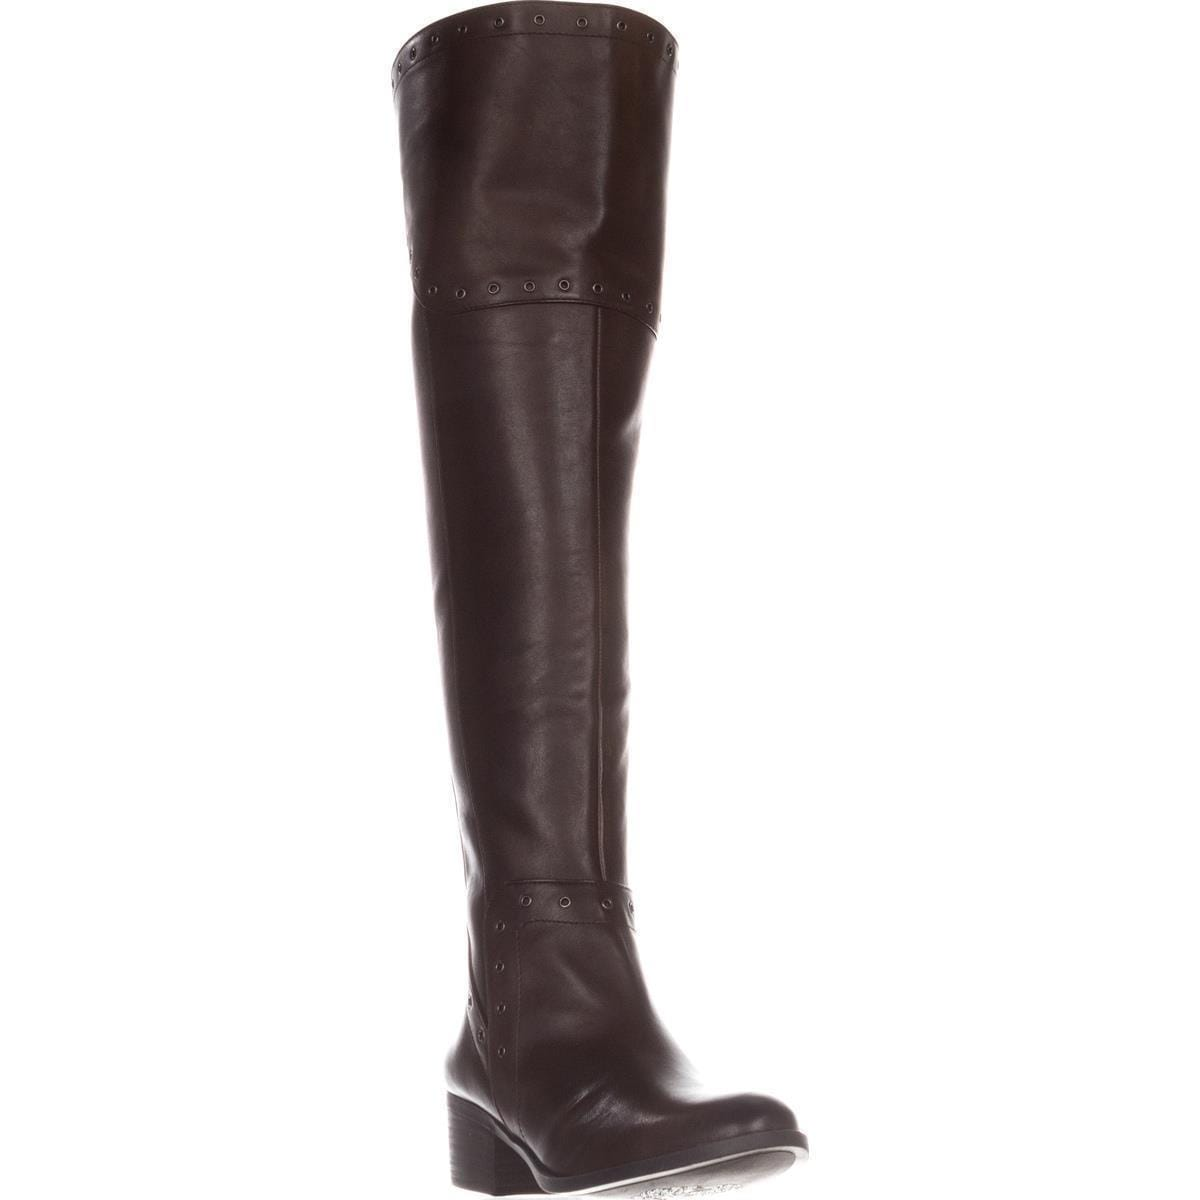 ccb1b2aec61 Shop Vince Camuto Bestan Studded Over The Knee Boots